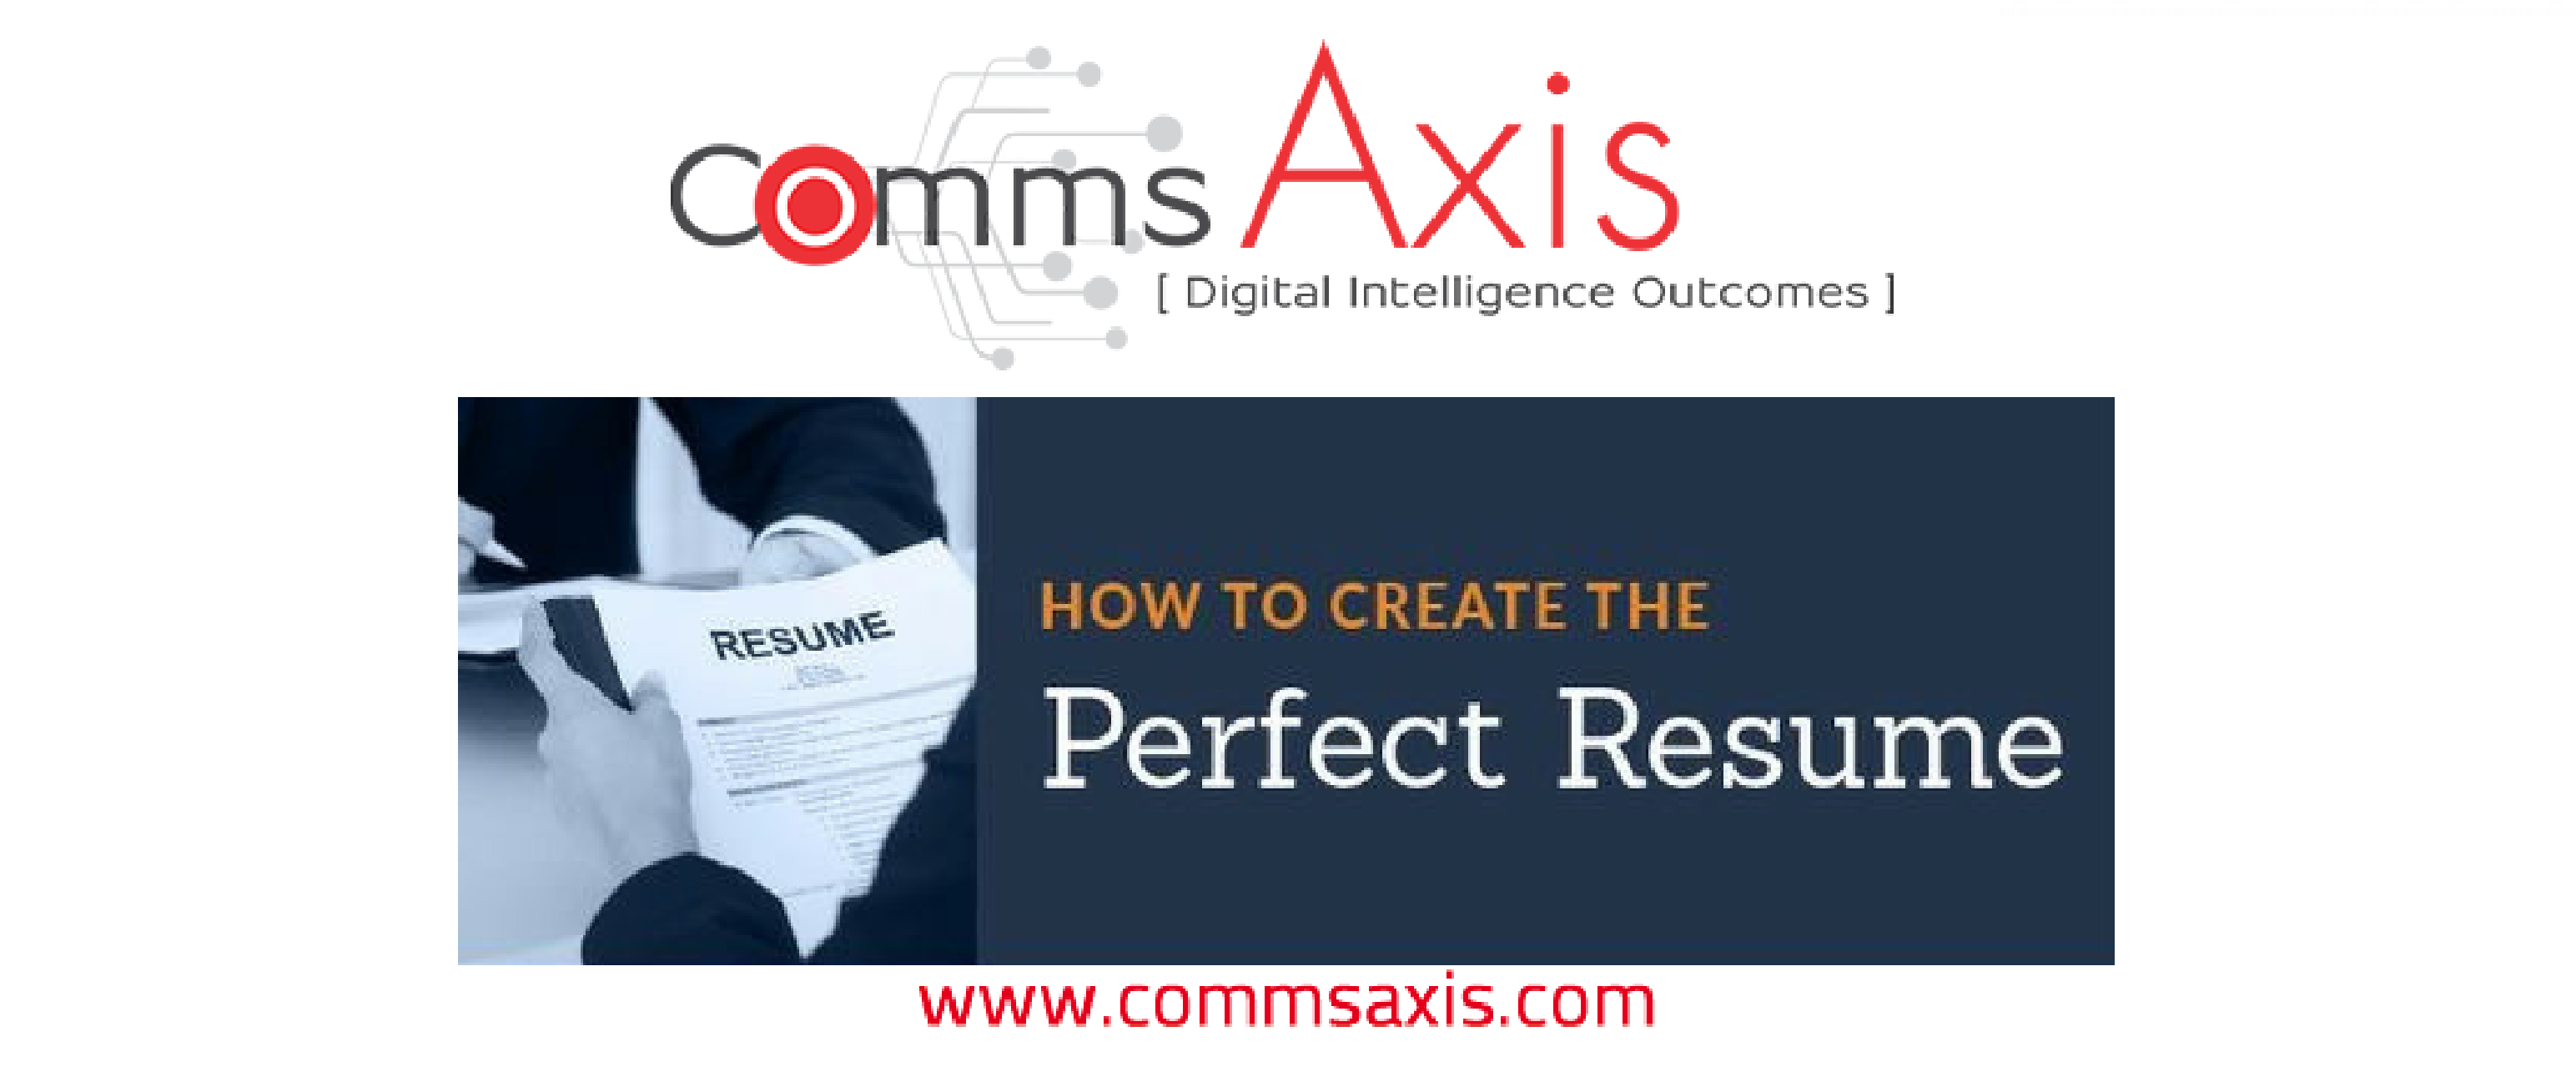 how to create the perfect resume cv infographic comms axis comms axis content marketing sales combined